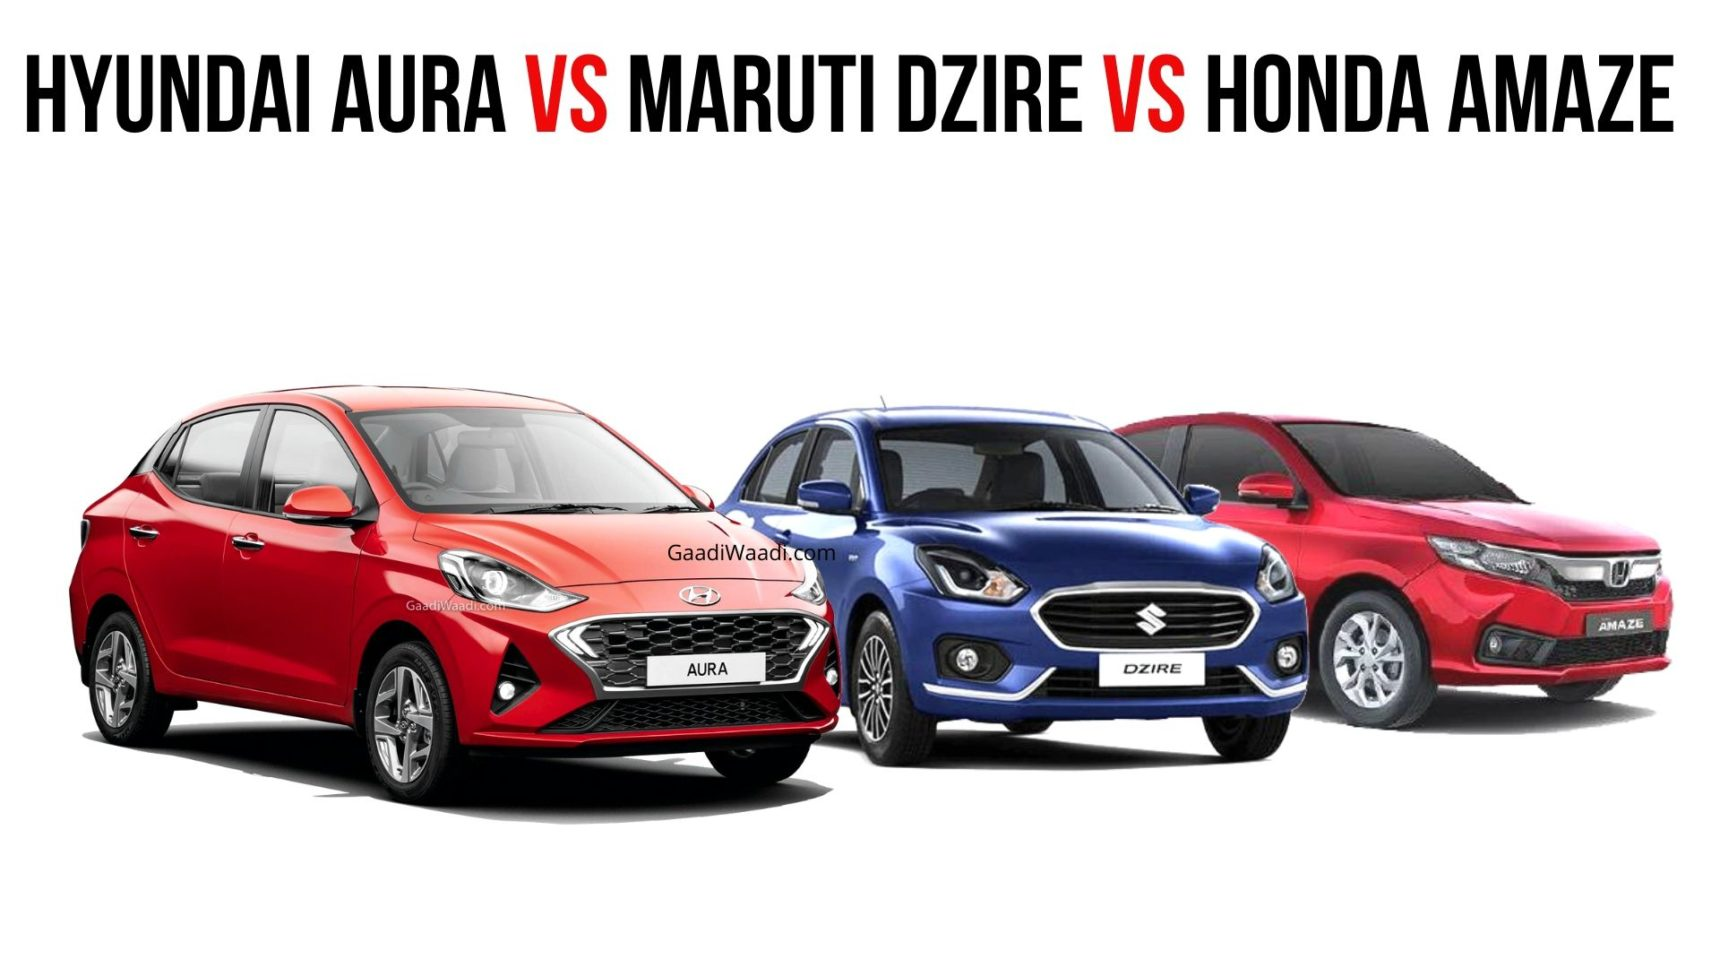 Hyundai Aura Vs Maruti Dzire Vs Honda Amaze – Specs and Features Comparison